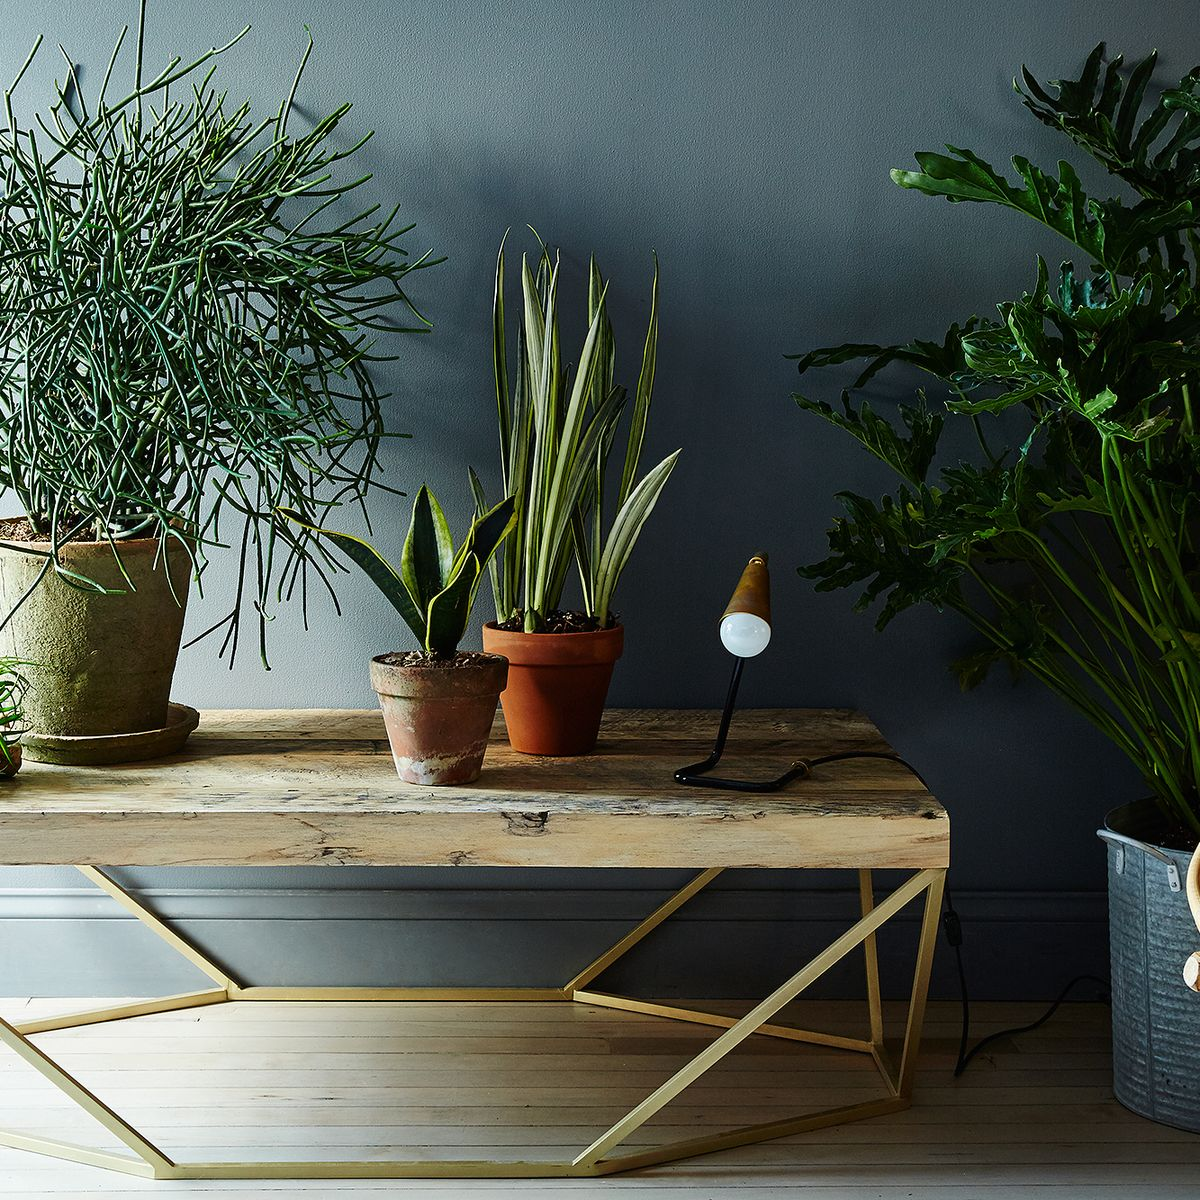 House Plant Care Guide - How to Take Care of Indoor Plants